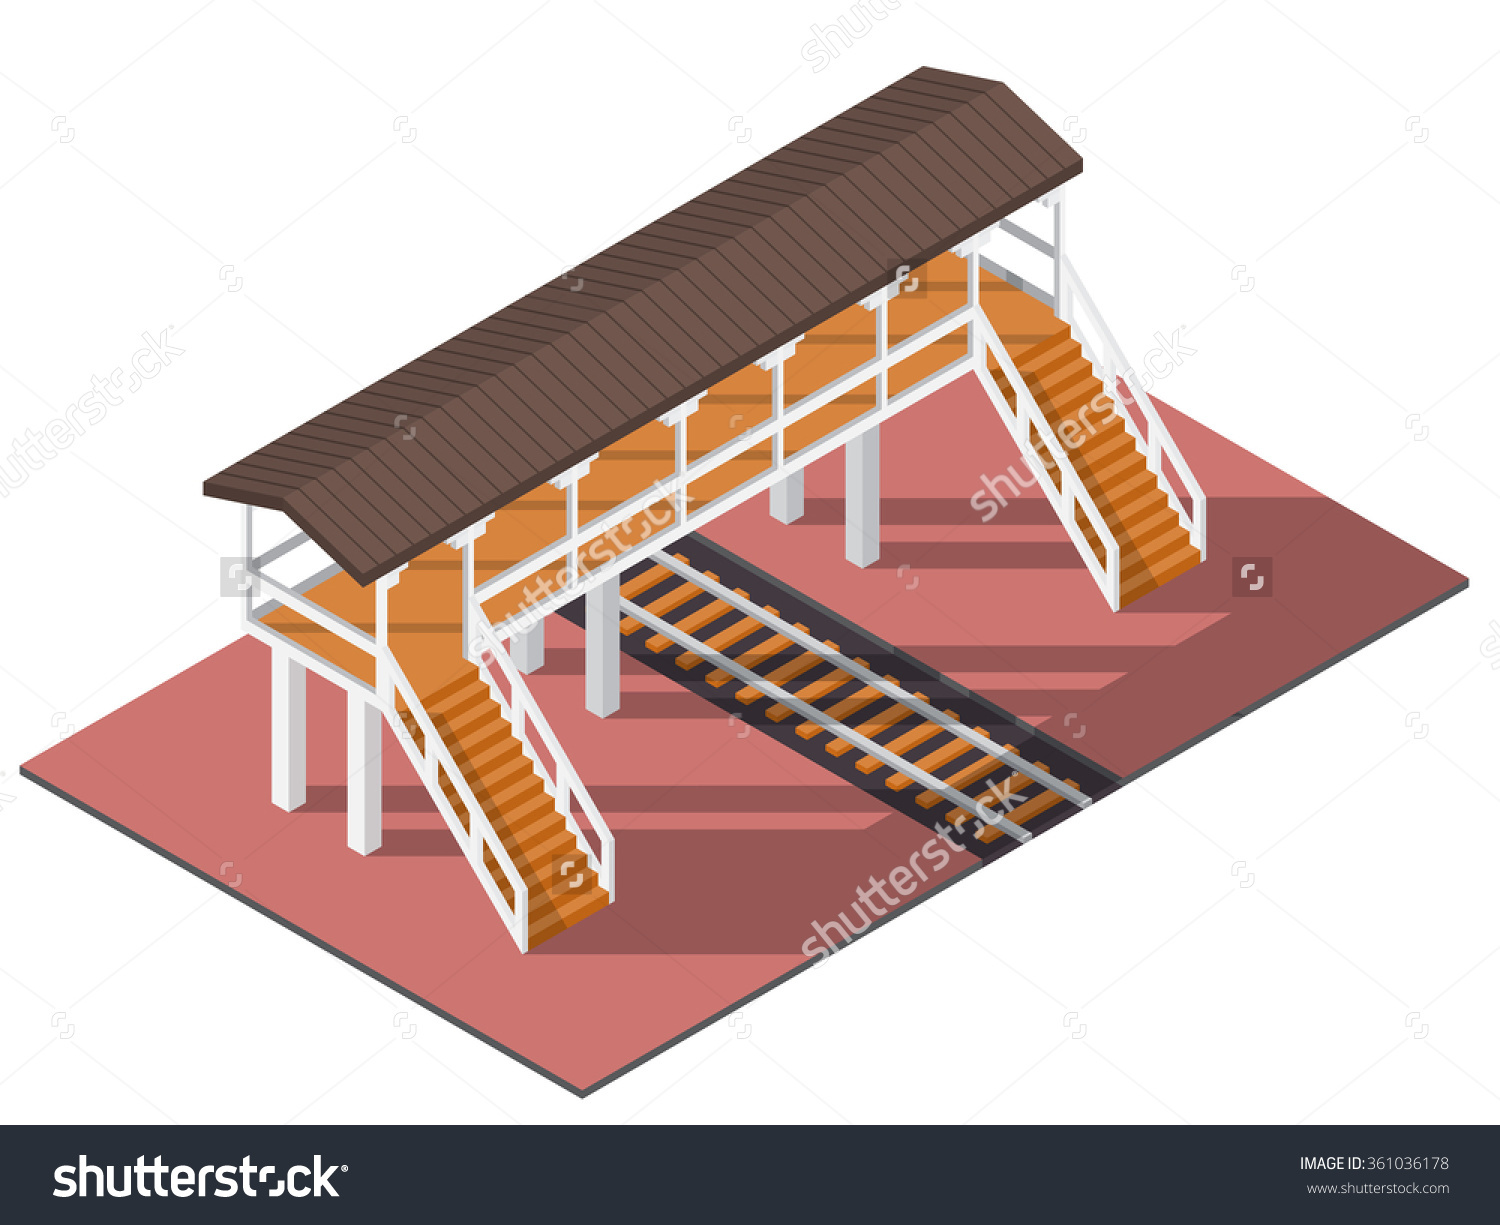 Vector Isometric Railway Overpass 3d Building Stock Vector.